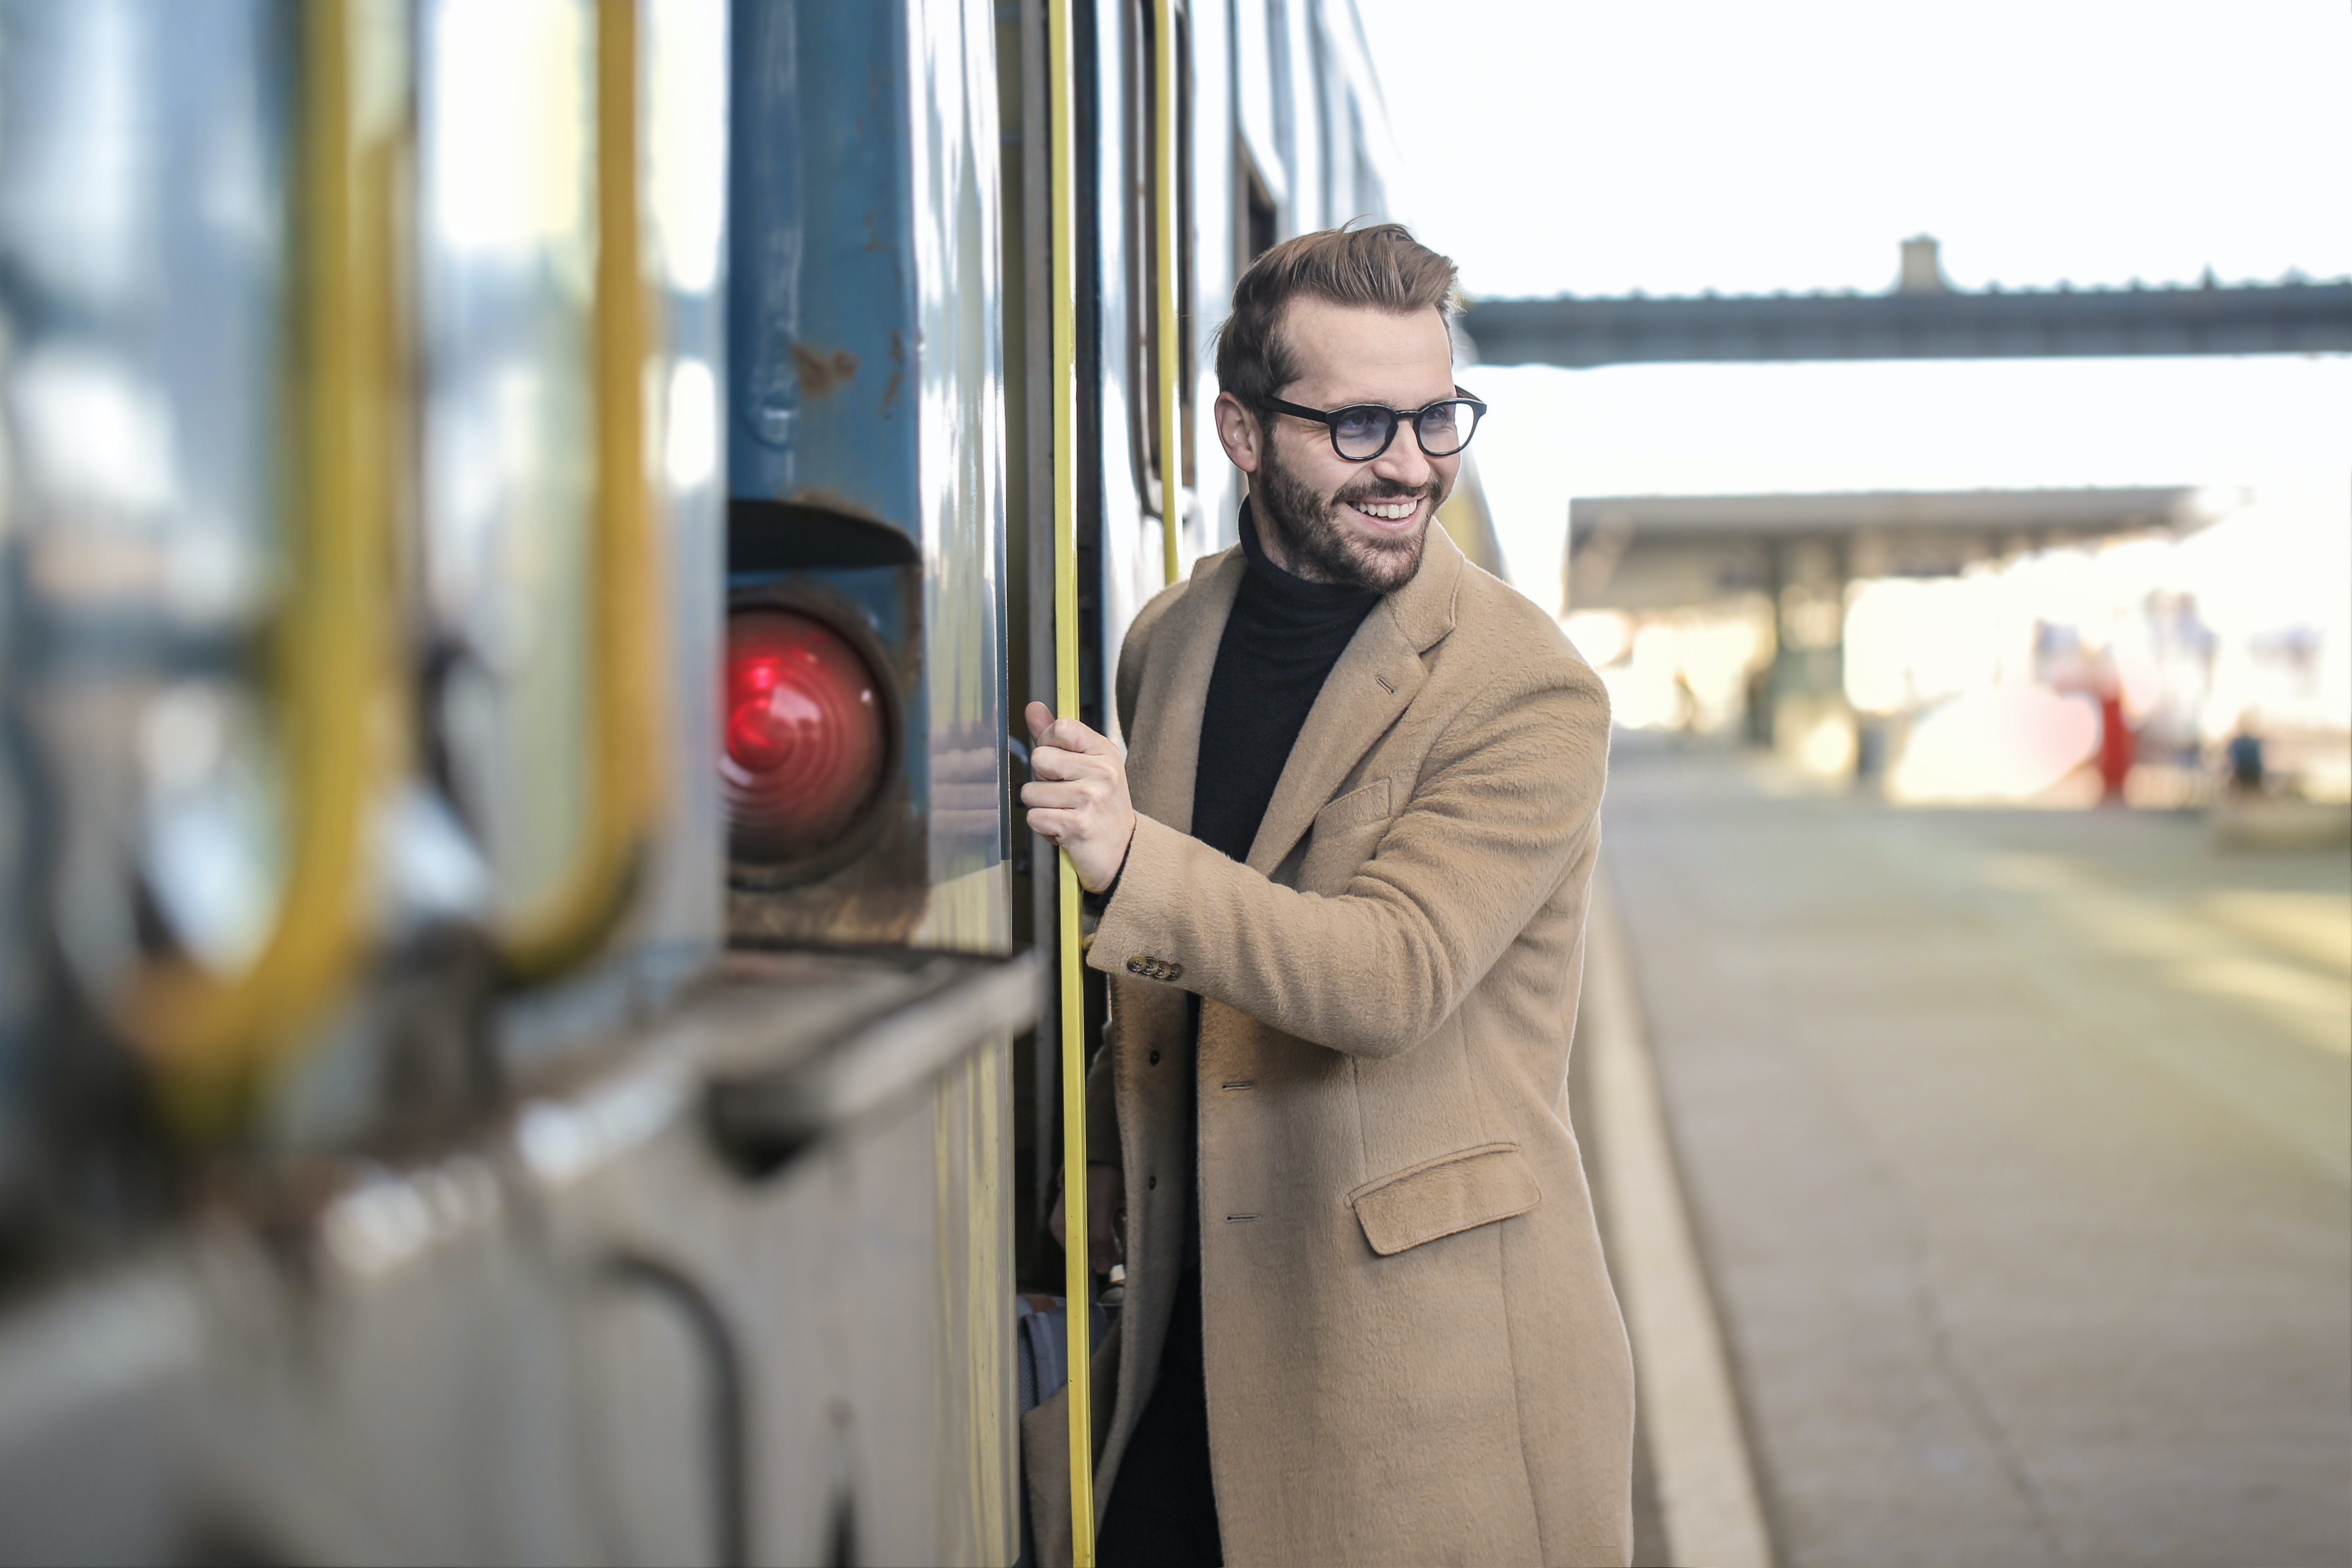 Man About to Enter the Train · Free Stock Photo